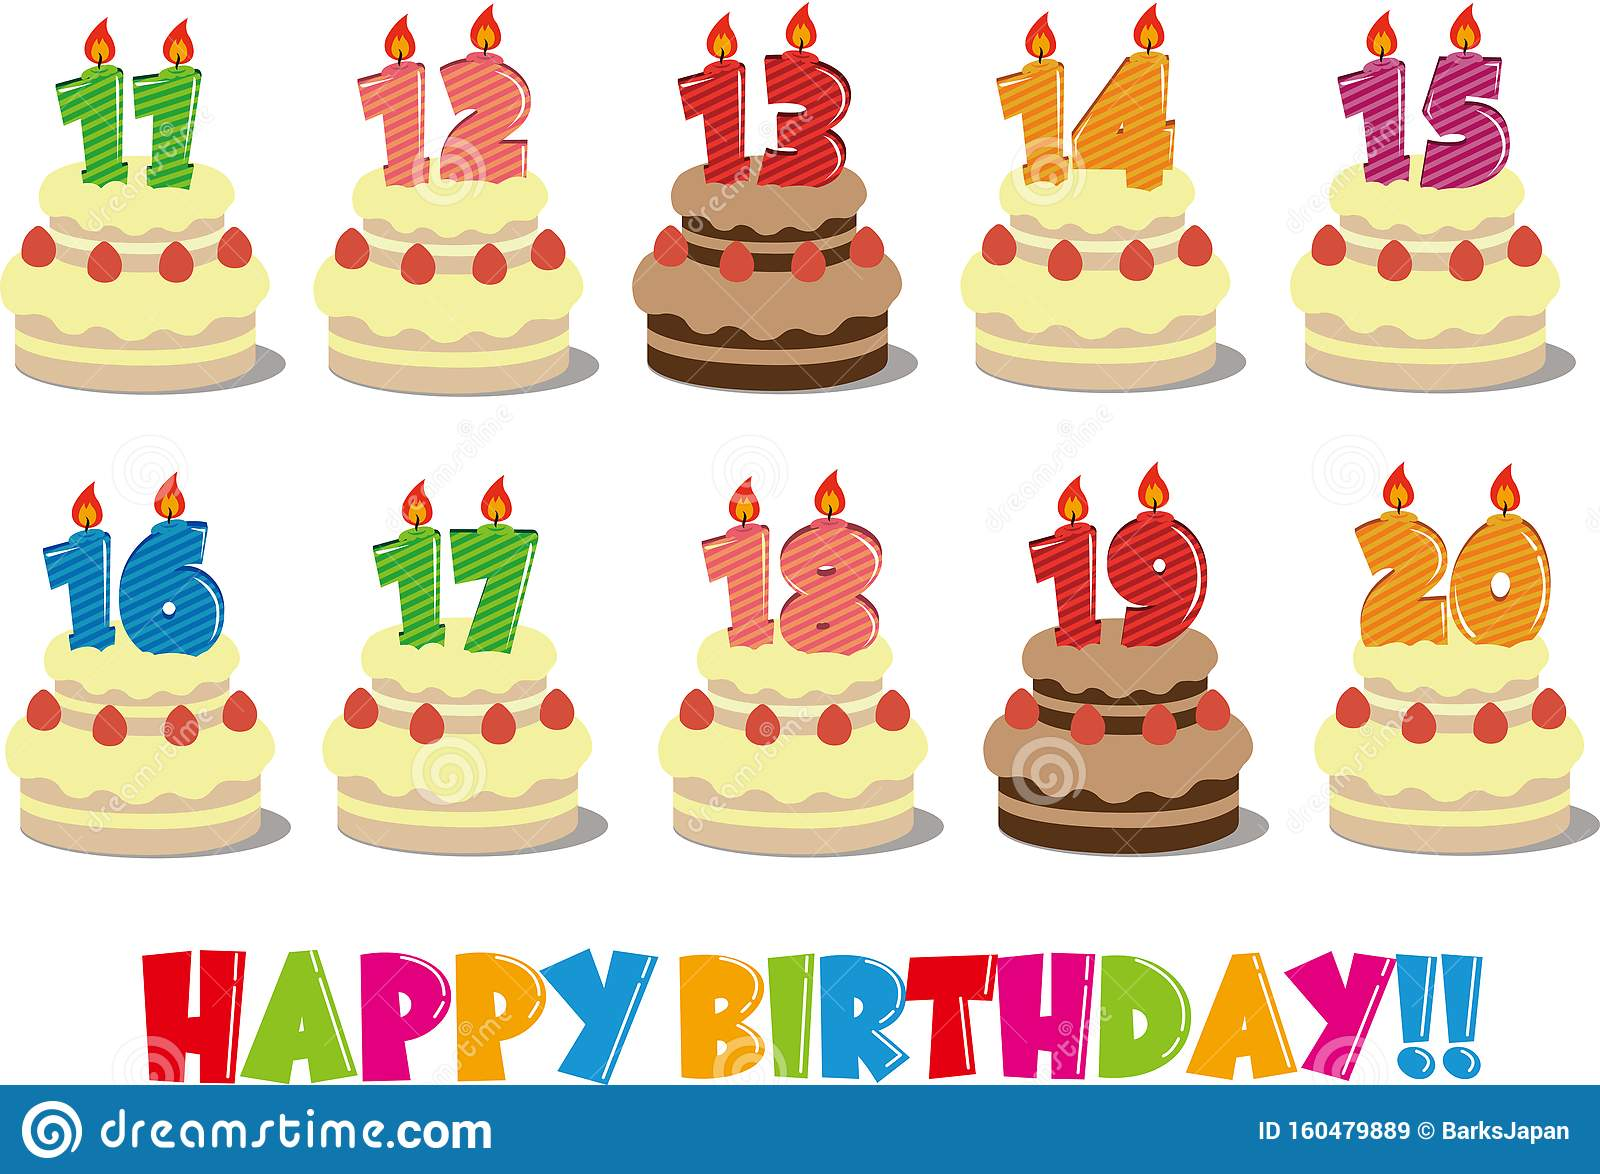 Tremendous Birthday Cake Illustration Set From 11 Years Old To 20 Years Old Funny Birthday Cards Online Elaedamsfinfo